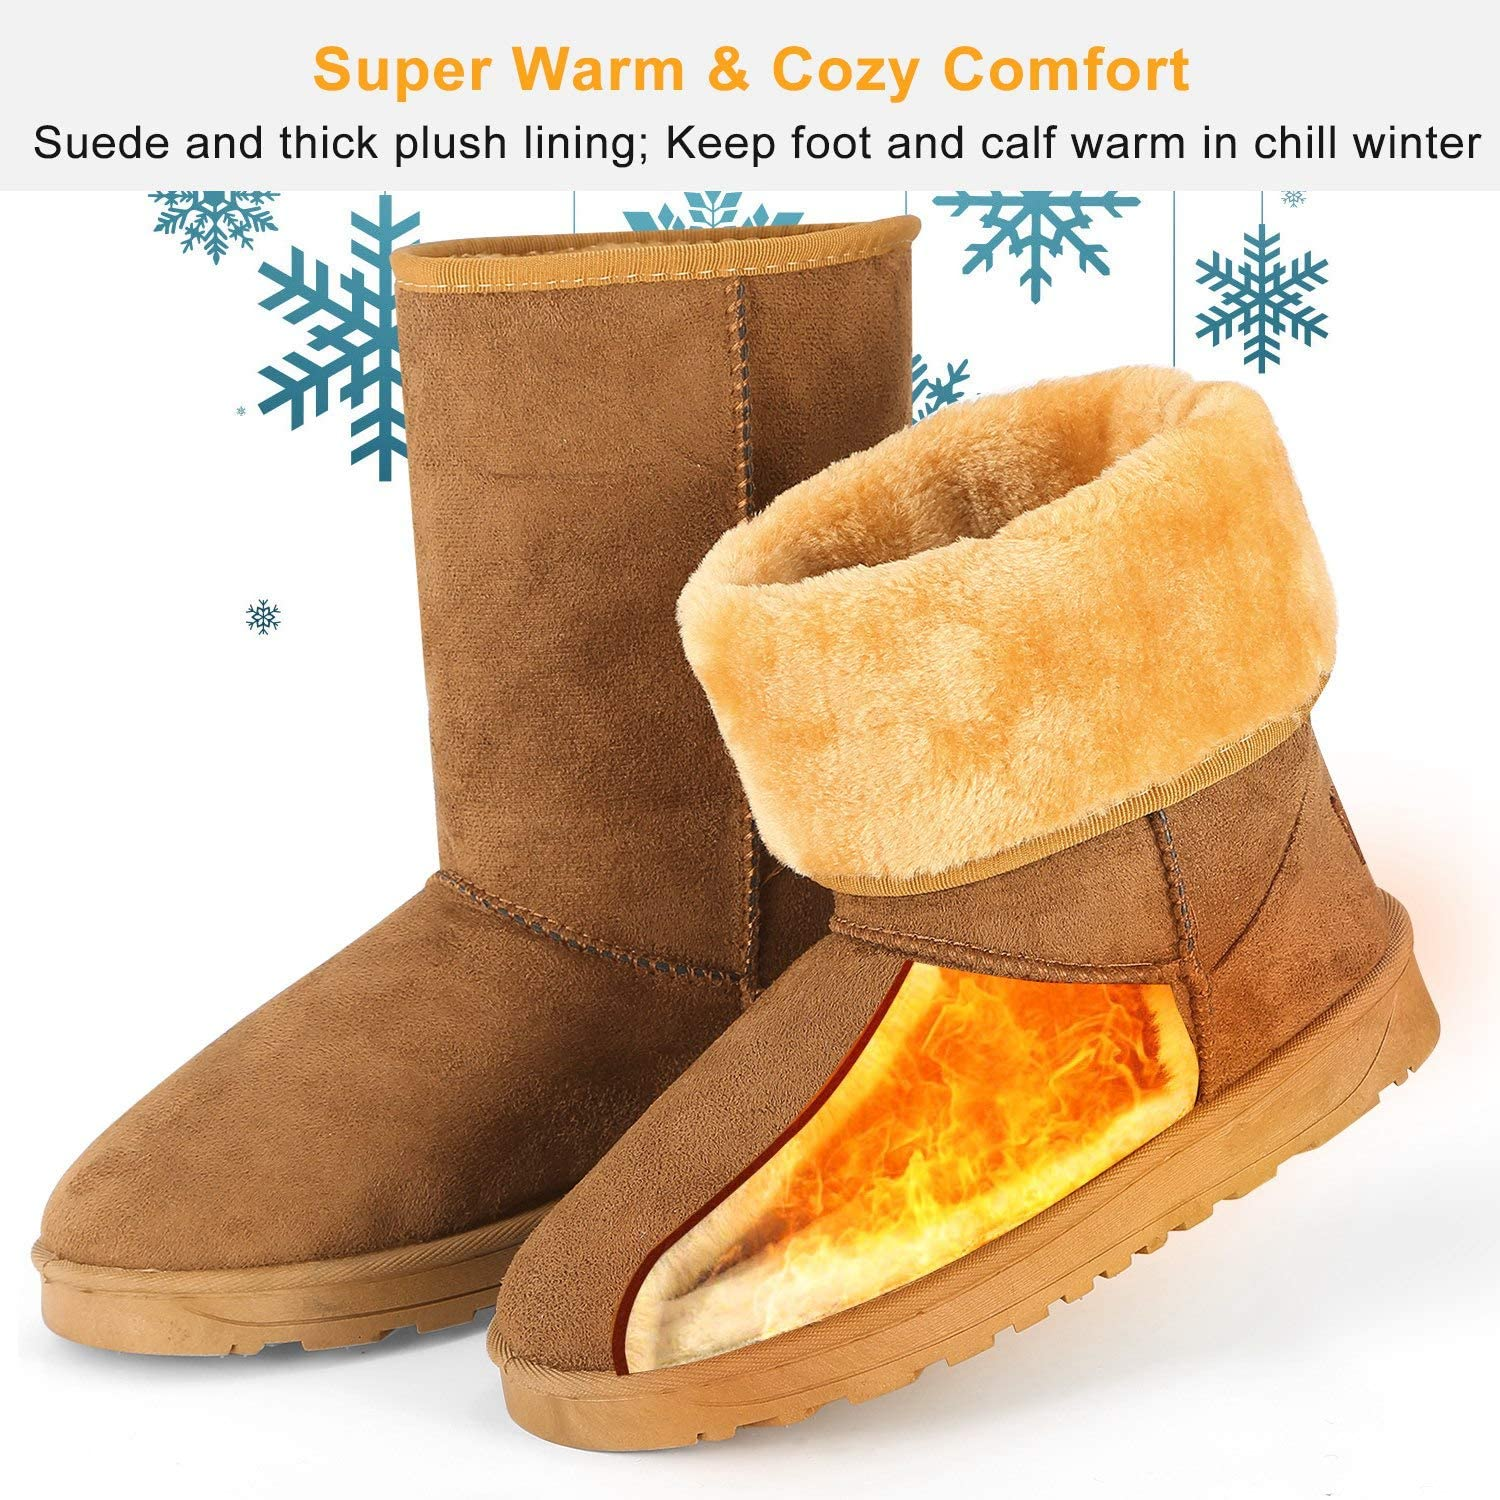 TeqHome Winter Boots for Women Classic Snow Boots Warm Mid-Calf Fur Boot